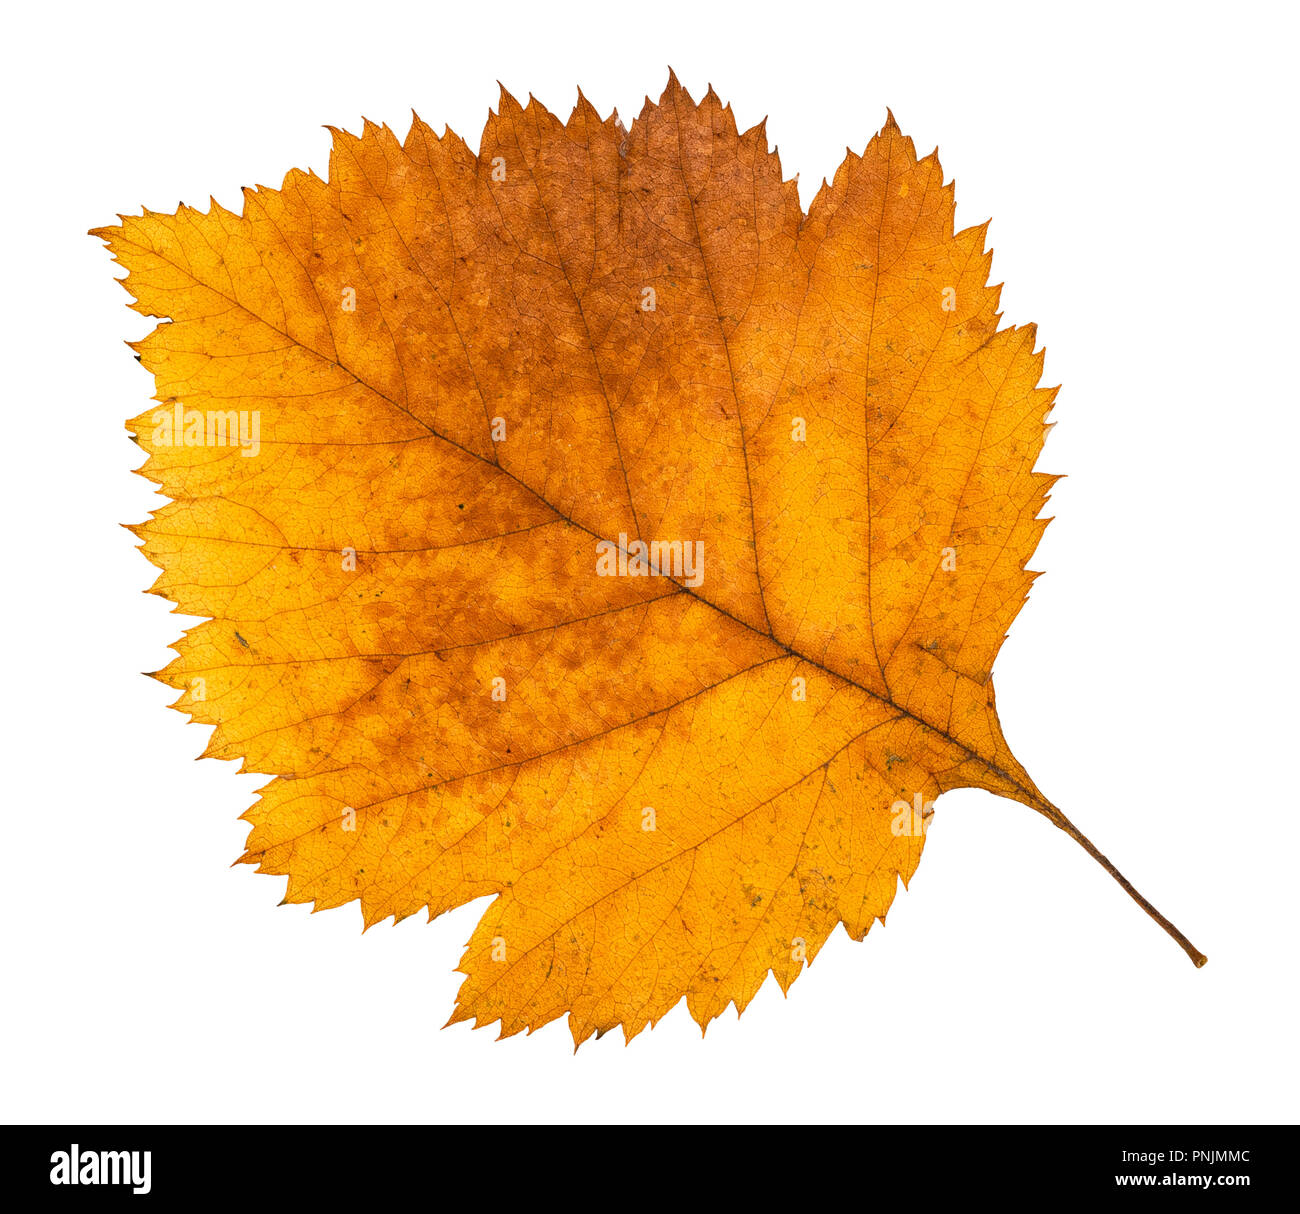 dried fallen autumn leaf of hawthorn tree cut out on white background Stock Photo